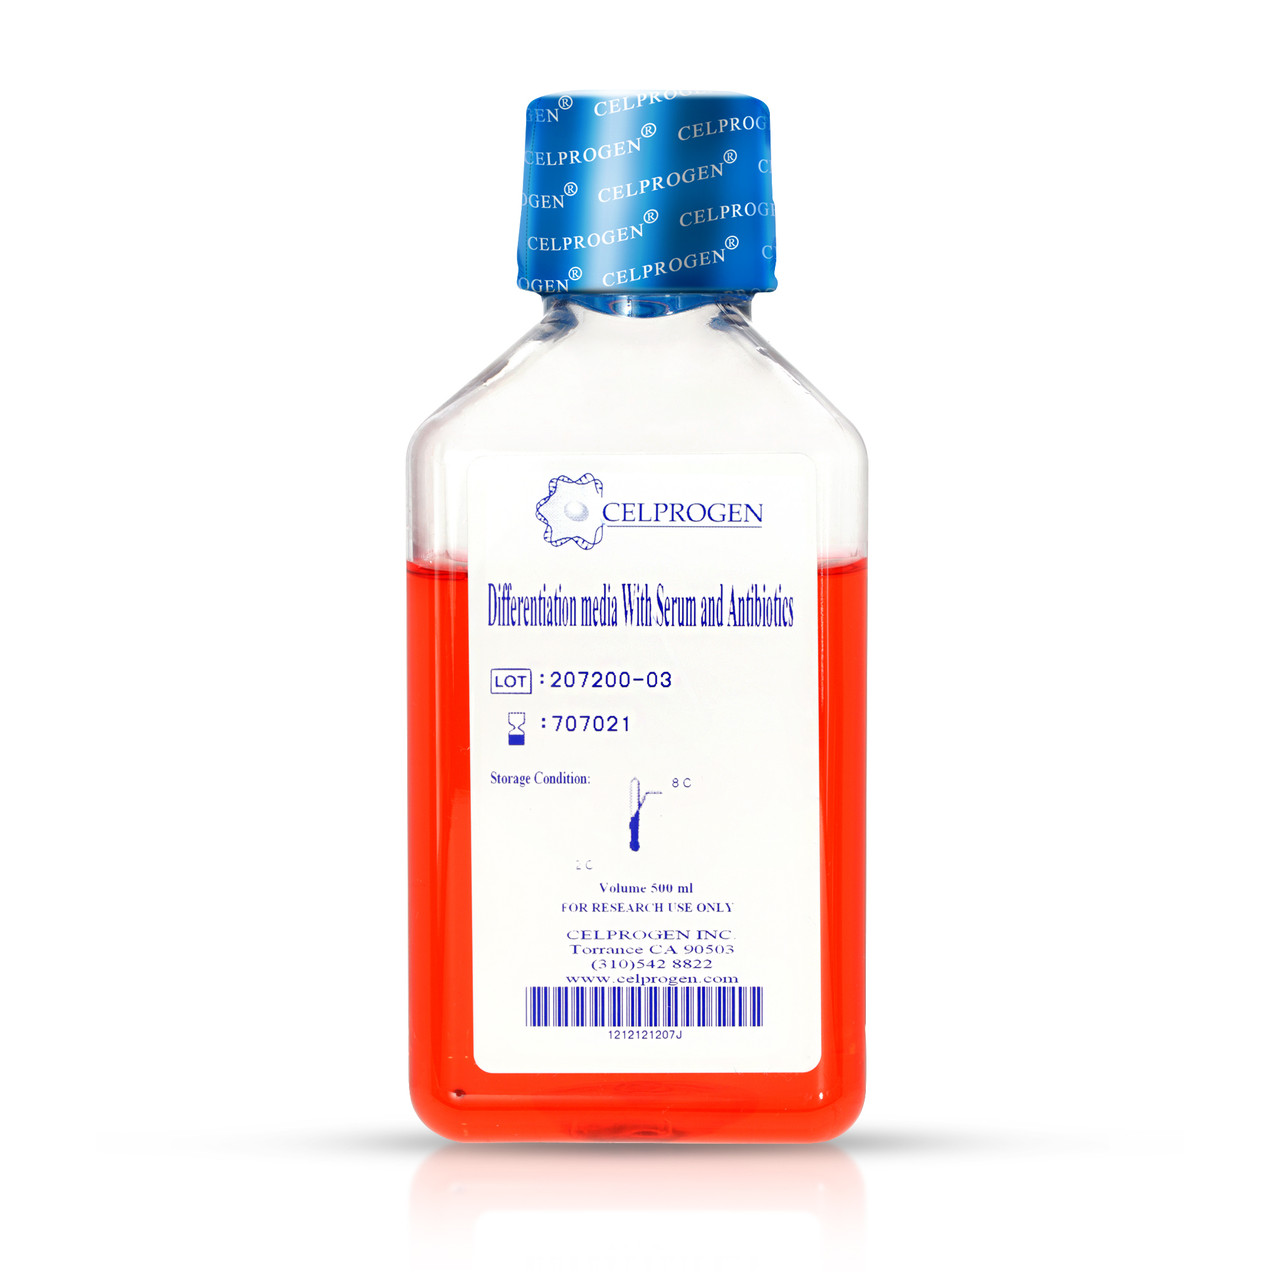 Human Oligodendrocyte Primary Cell culture Differentiation Media with Serum